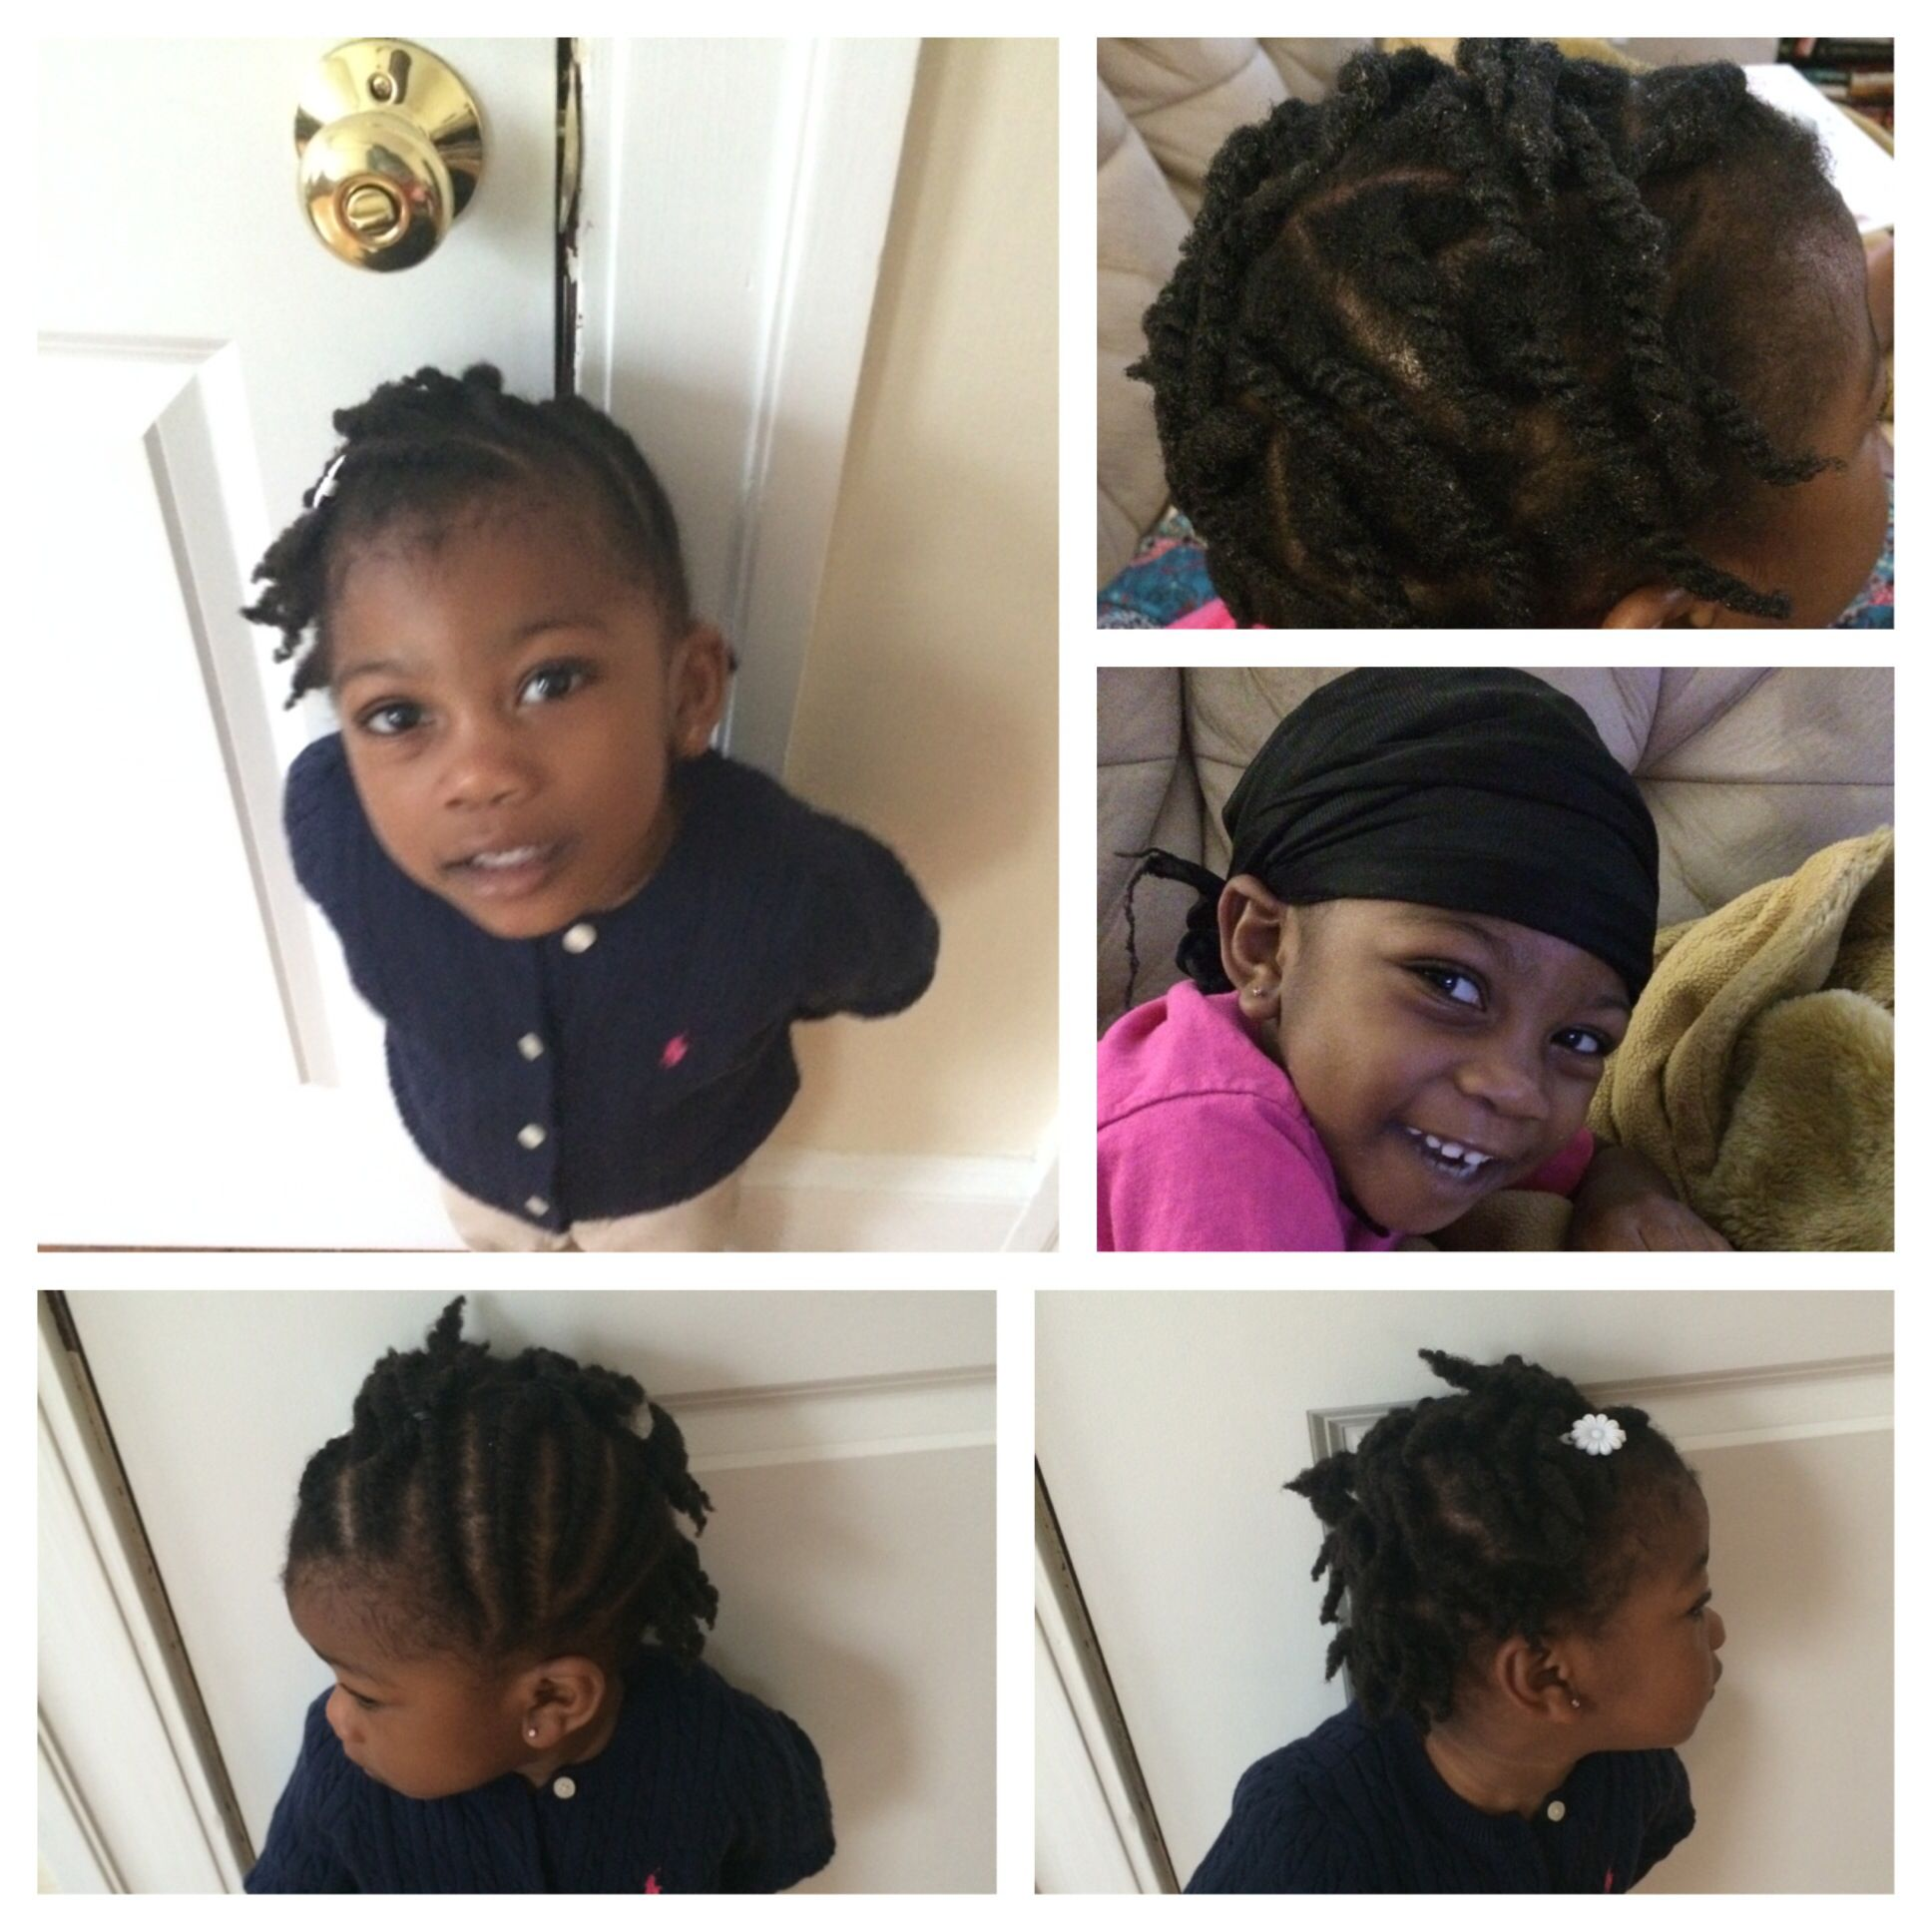 Natural Hair Style Twist Out Done On My 2 5 Yr Old Baby With 4c Hair I Used Shea Moisture Kids Curling Butter Natural Hair Styles Hair Styles 4c Hairstyles